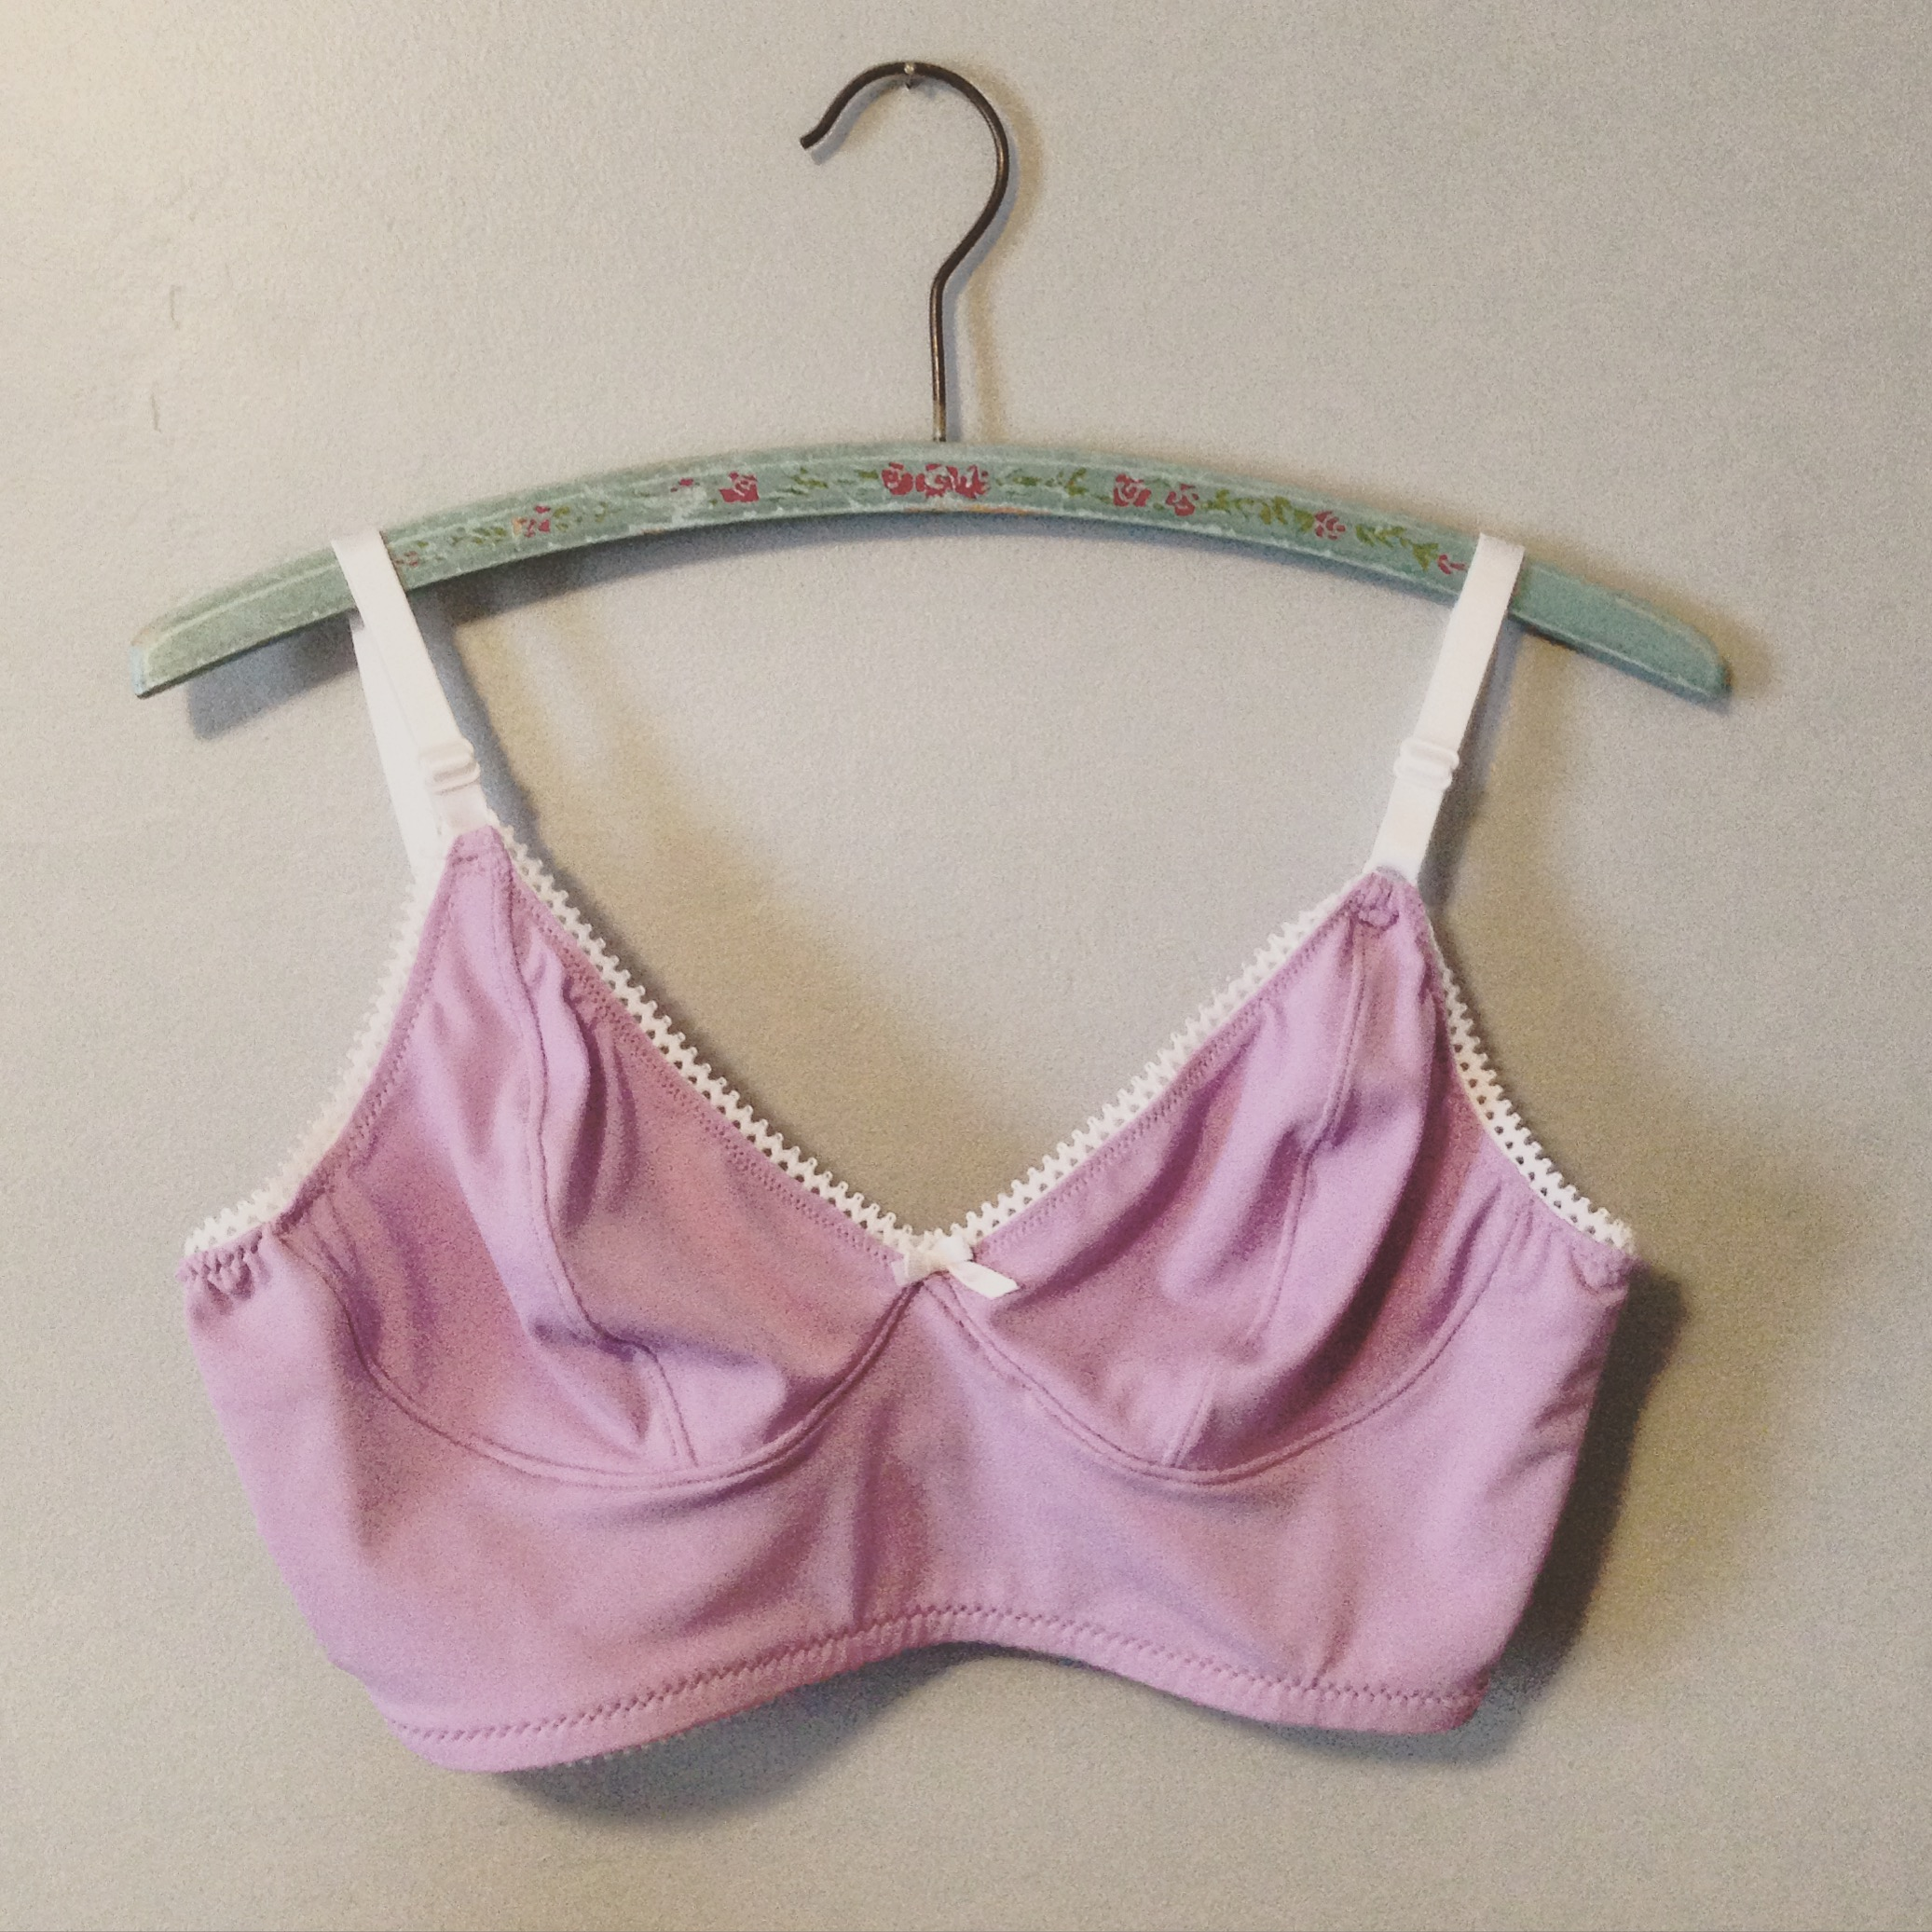 Watson Bra made by Ms. Cleaver